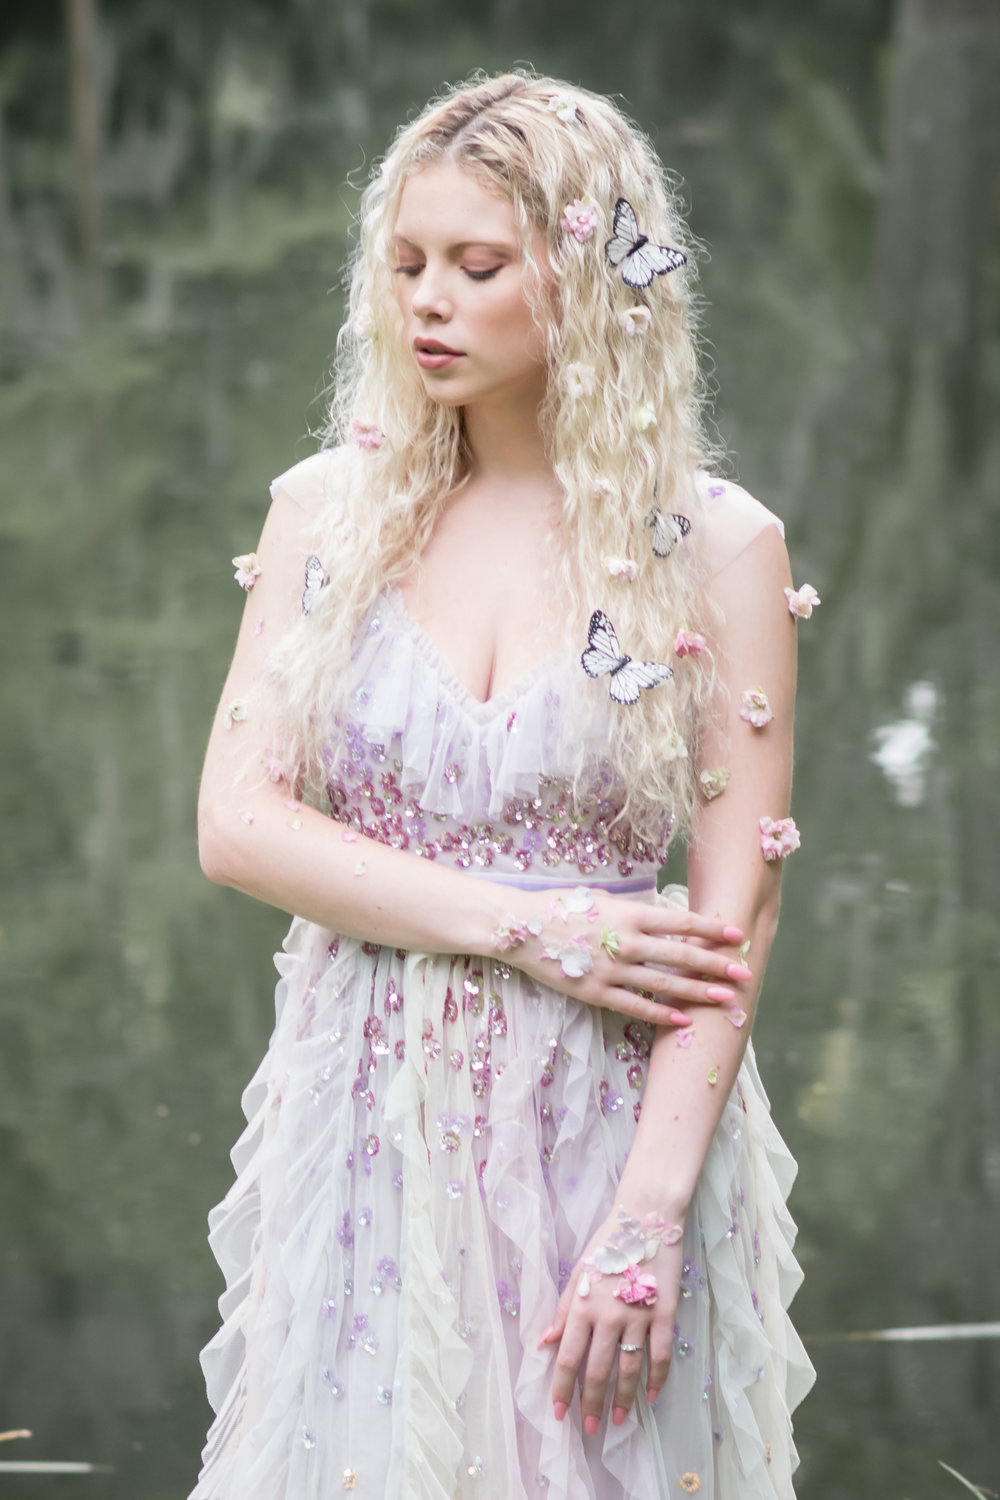 lilac bride gown with flowers and butterflies on hair and flowers on skin